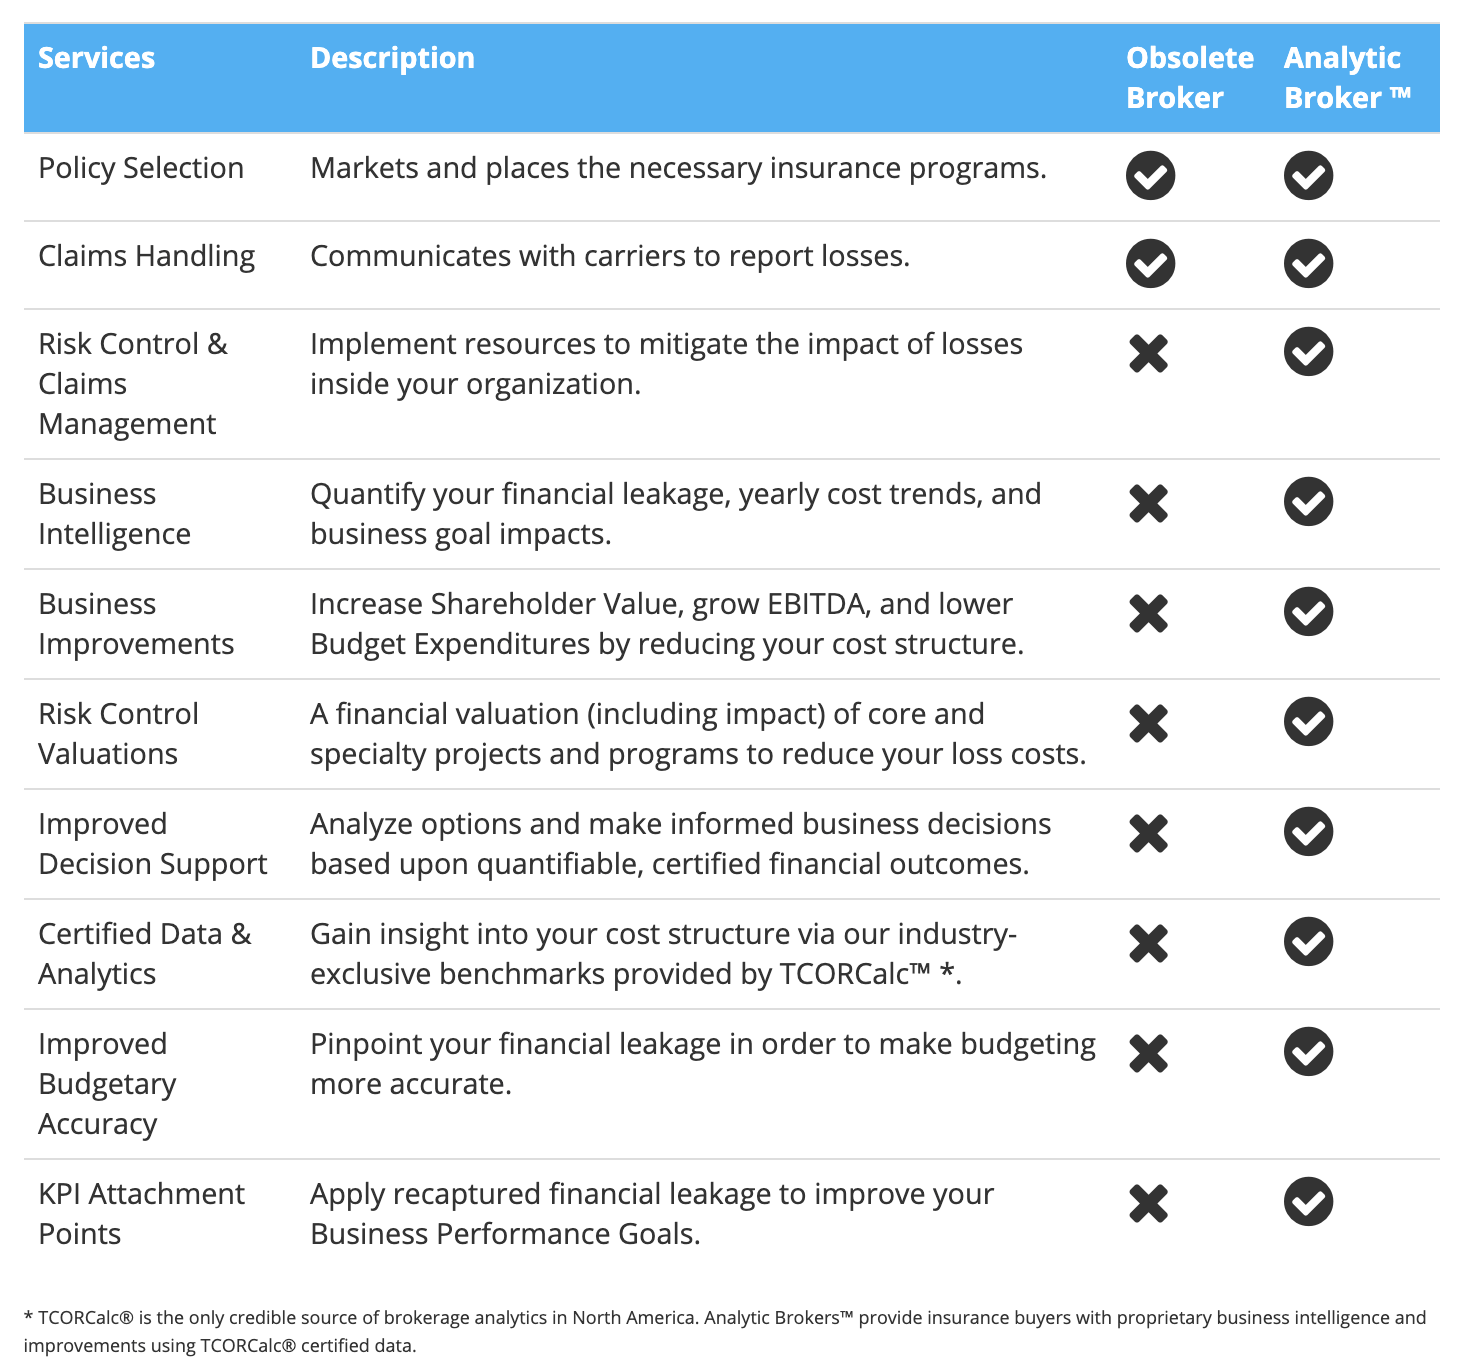 obsolete-brokers-vs-analytic-brokers-comparison-chart